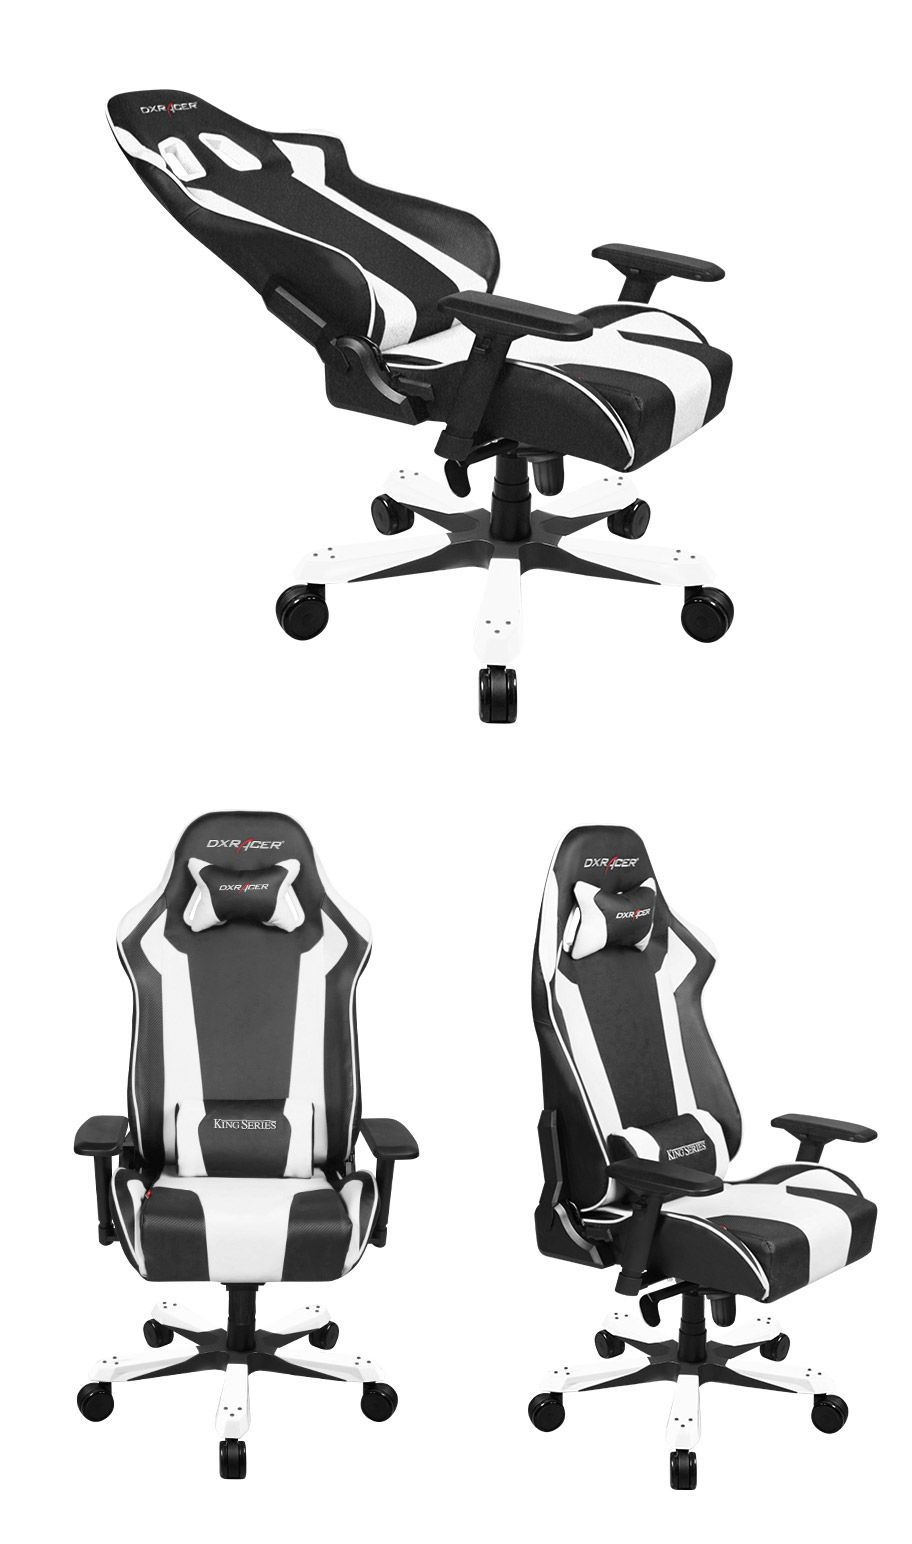 Dxracer Kf06 Series Pc Office Gaming Chair Black White Dxr Kf06 Wh 469 00 Pc Case Gear Gaming Chair Gamer Chair Game Room Chairs